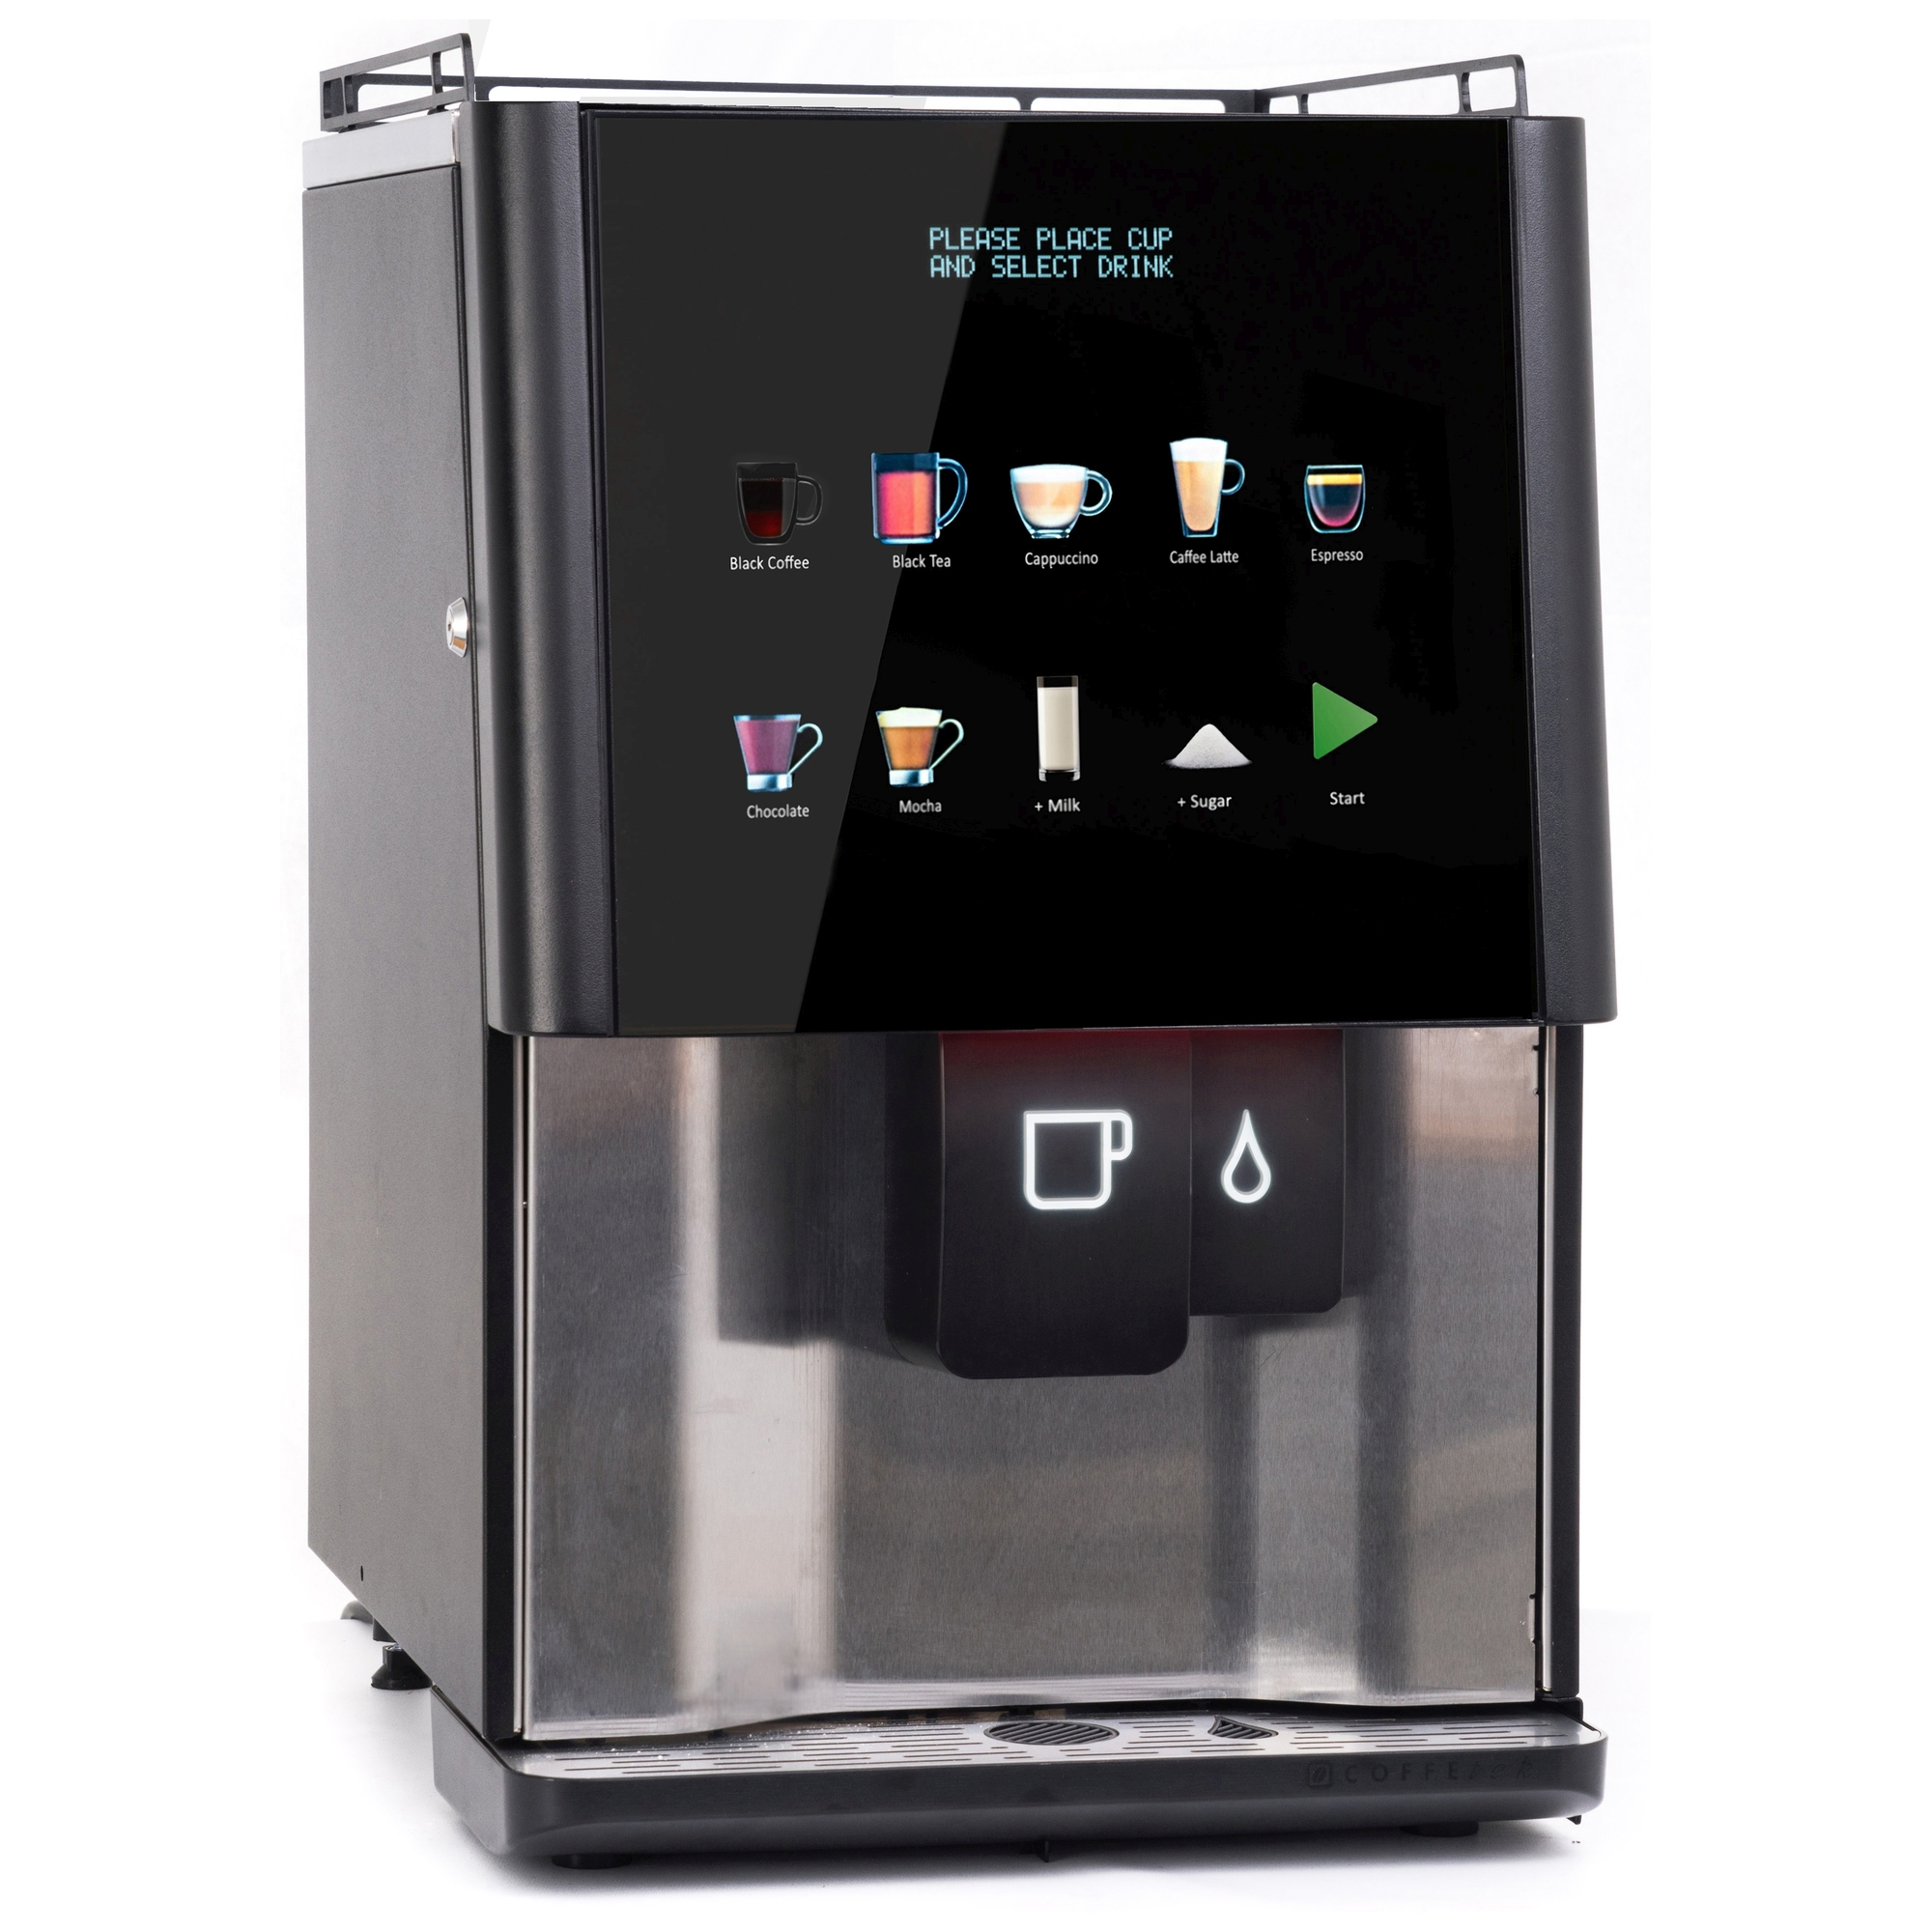 Vitro S3 Coffee Machine